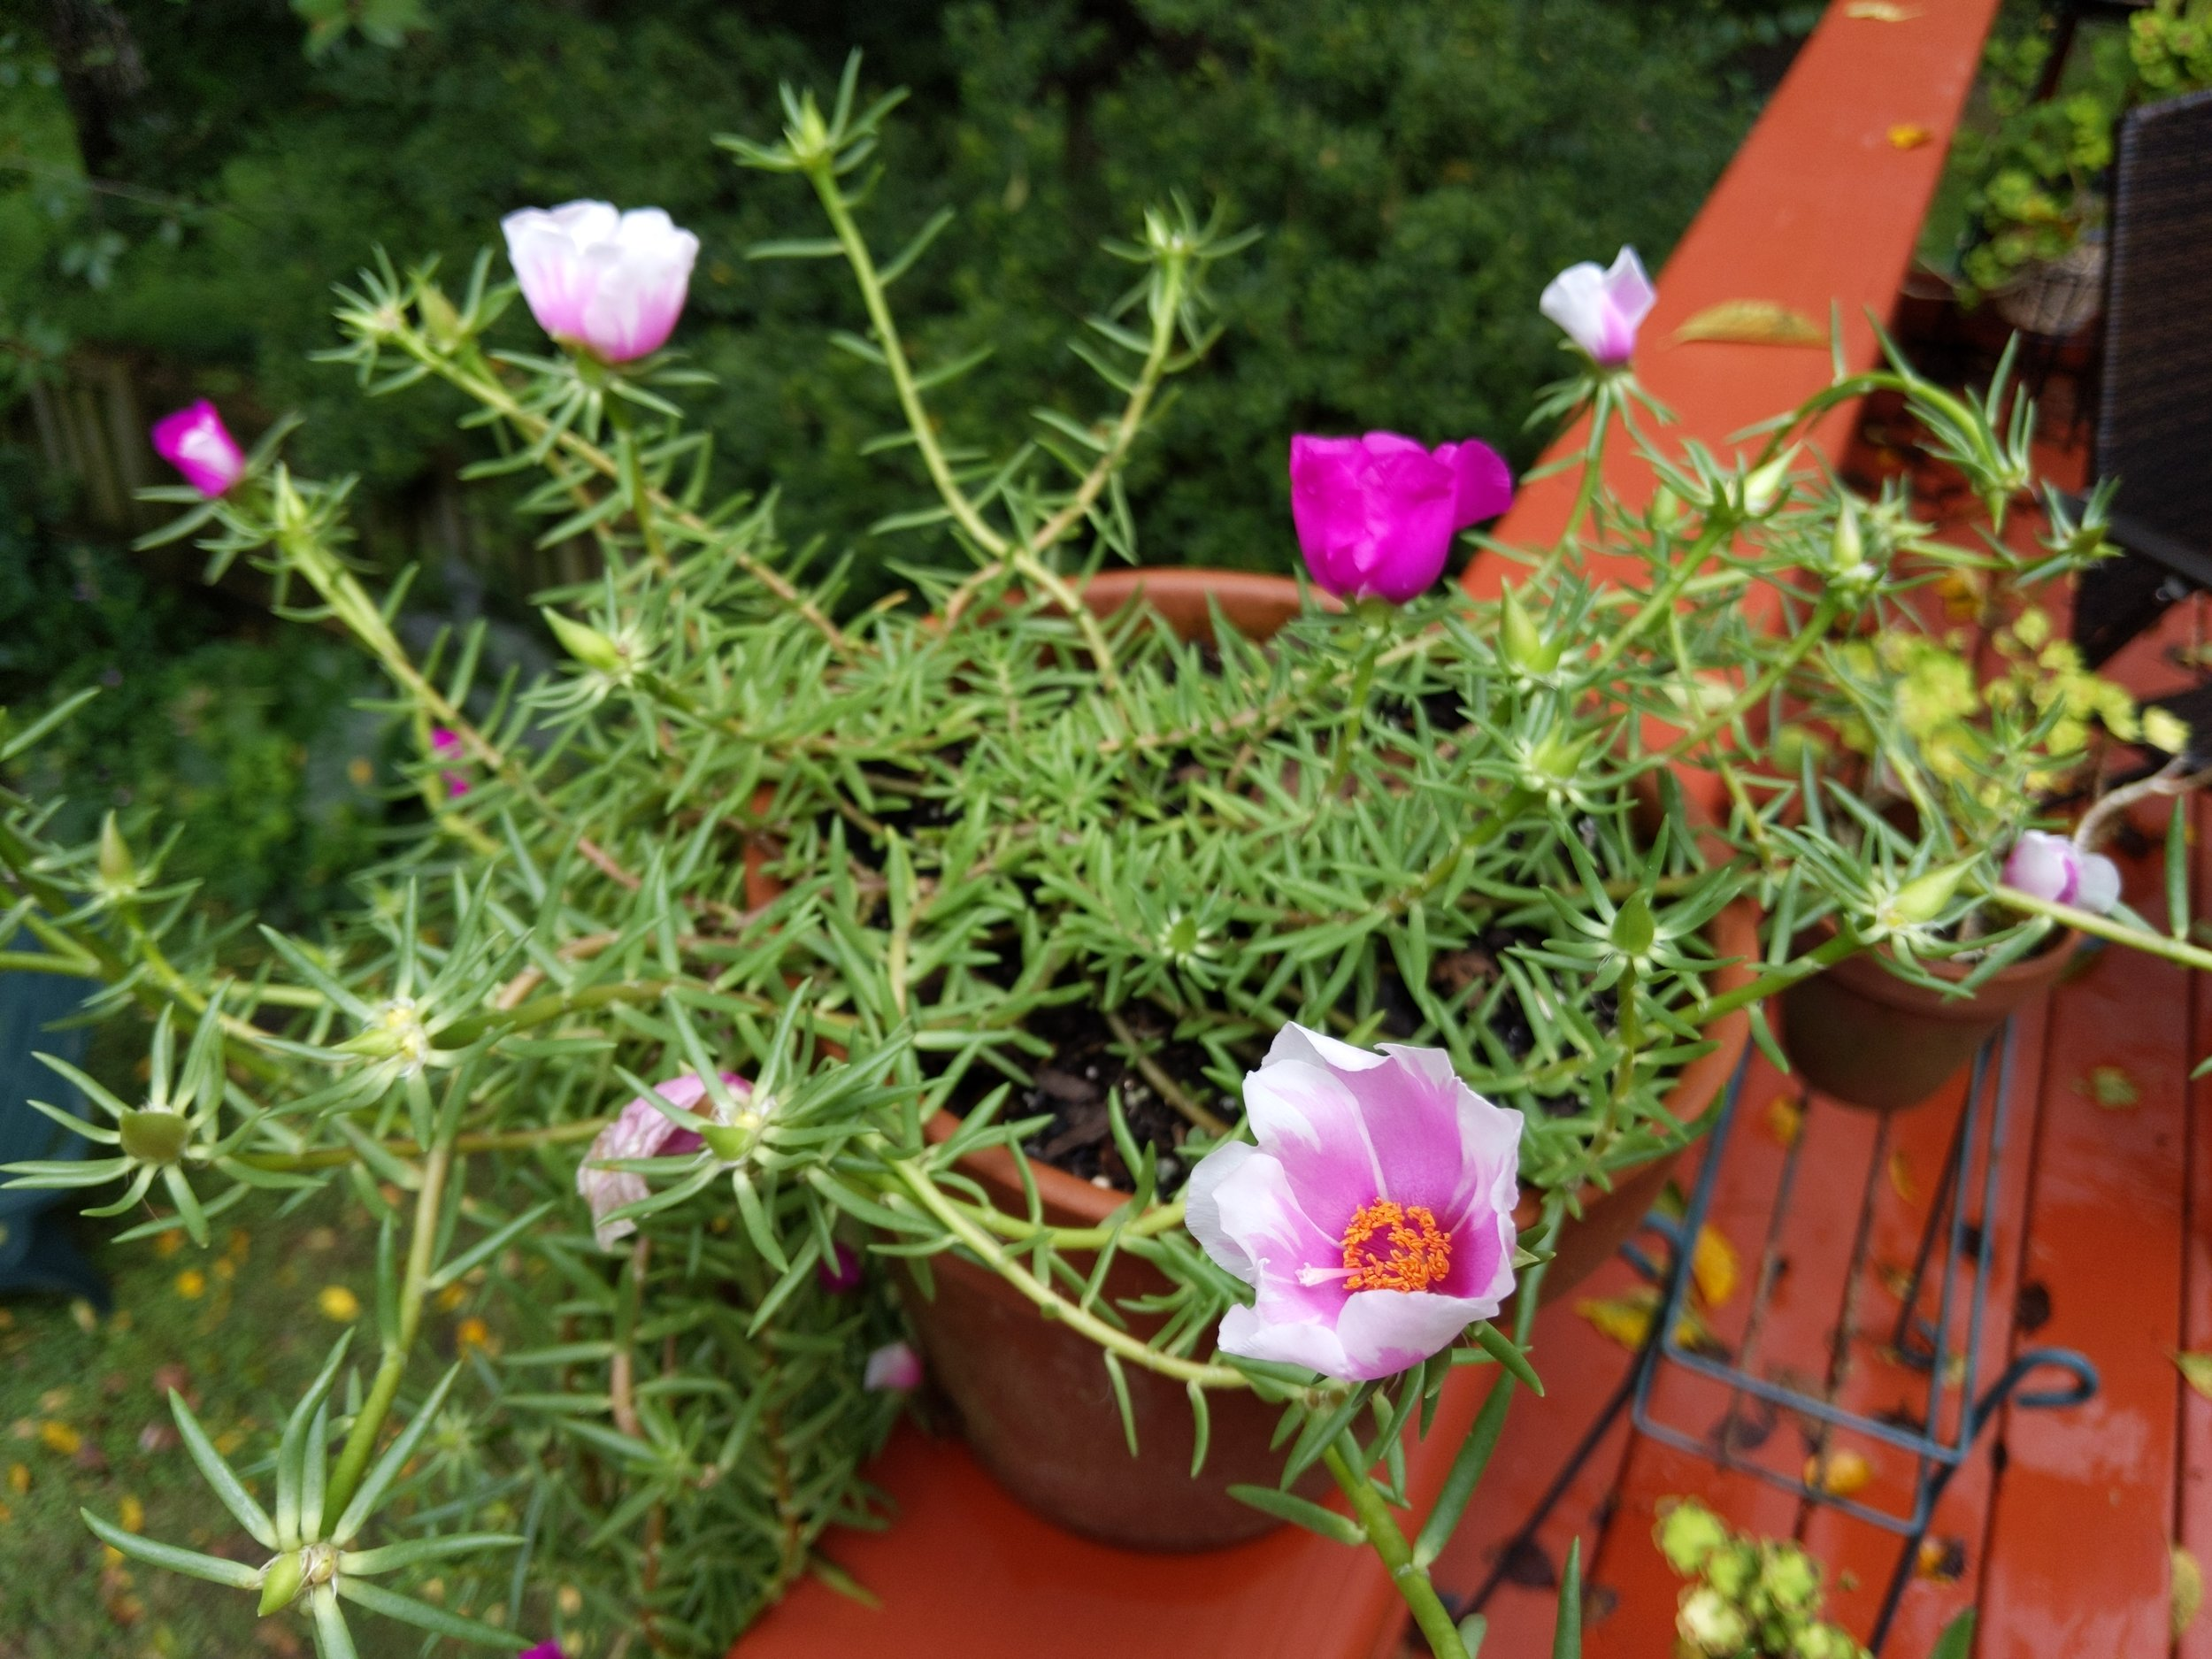 Unusual portulaca from my friend Ralph - both colors show up on the same plant.